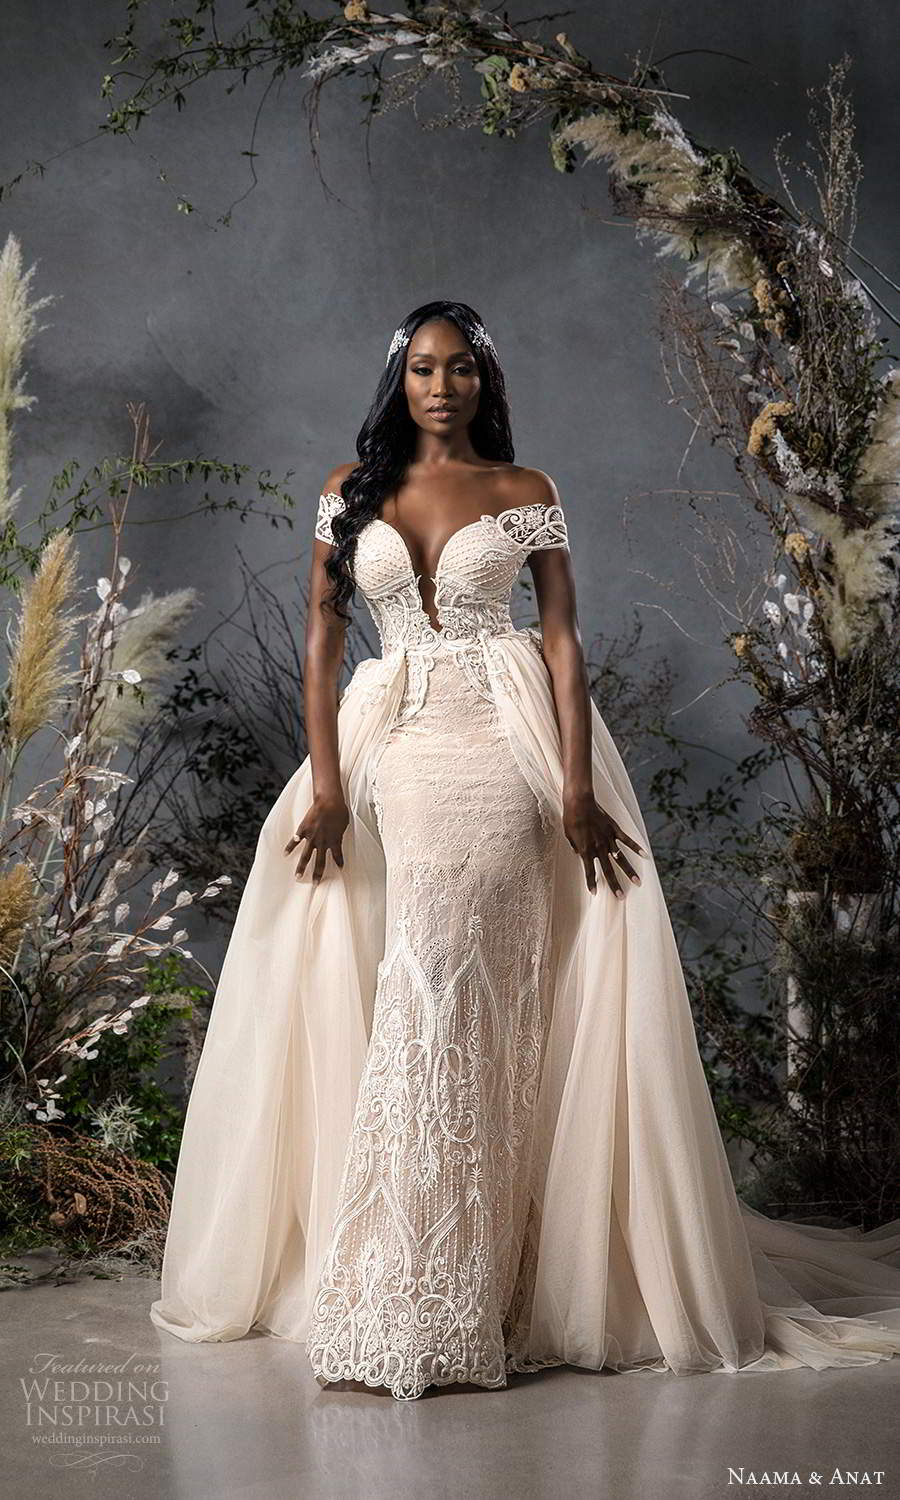 naama anat fall 2020 bridal off shoulder sweetheart neckline fully embellished fit flare wedding dress chapel train illusion back ball gown overskirt (3) mv